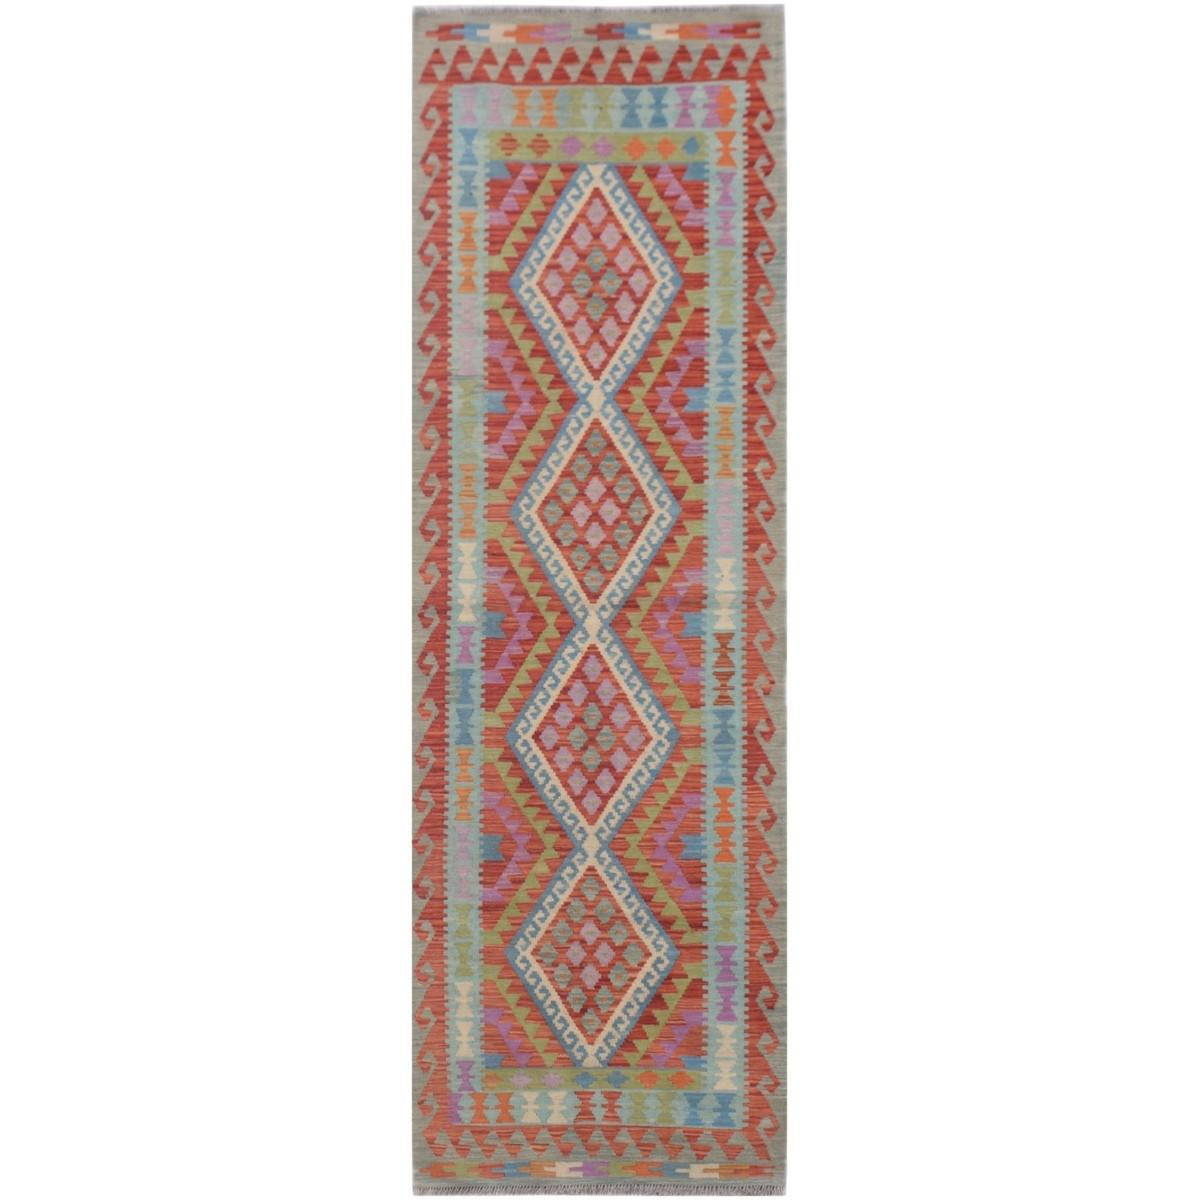 One of A Kind Paloma Hand Knotted Wool Maimana Kilim Runner Rug, 308x81cm